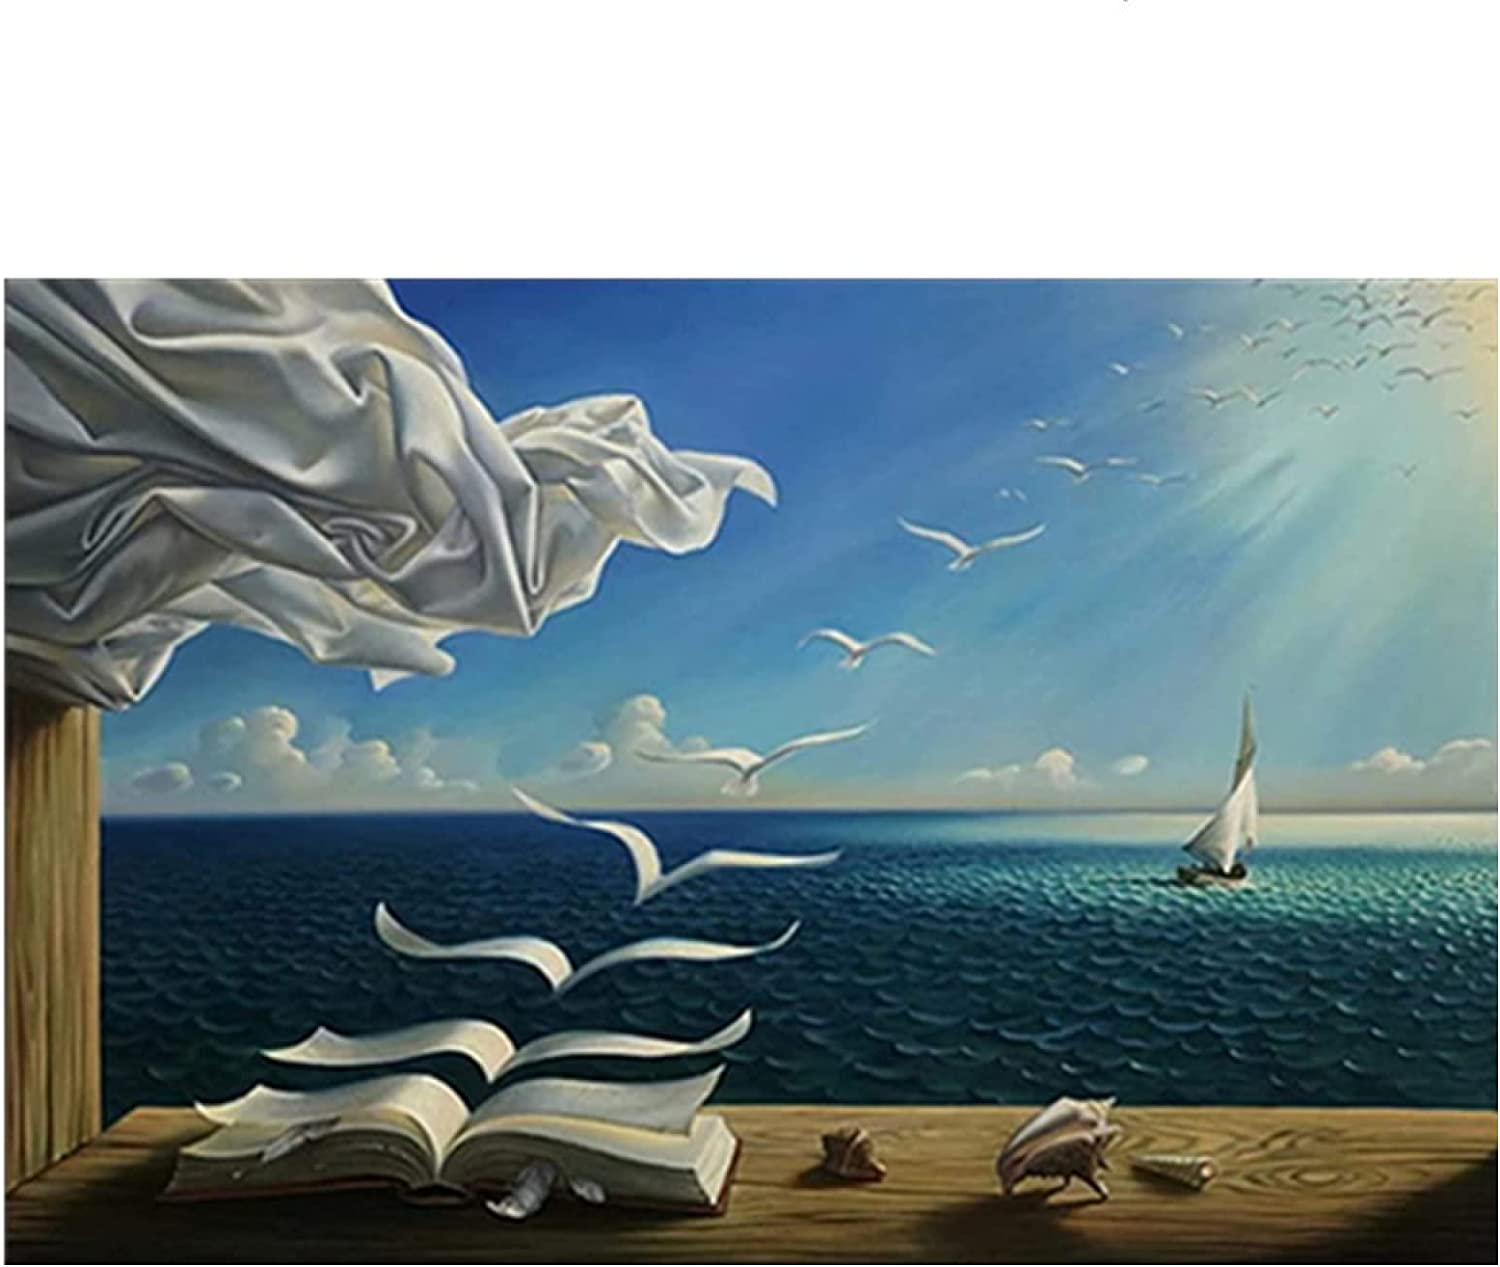 Salvador Dali Oil Painting The Waves Book Sailboat Wall Paintings on Canvas Posters and Prints Wall Art Abstract Pictures Artwork Giclee Decor